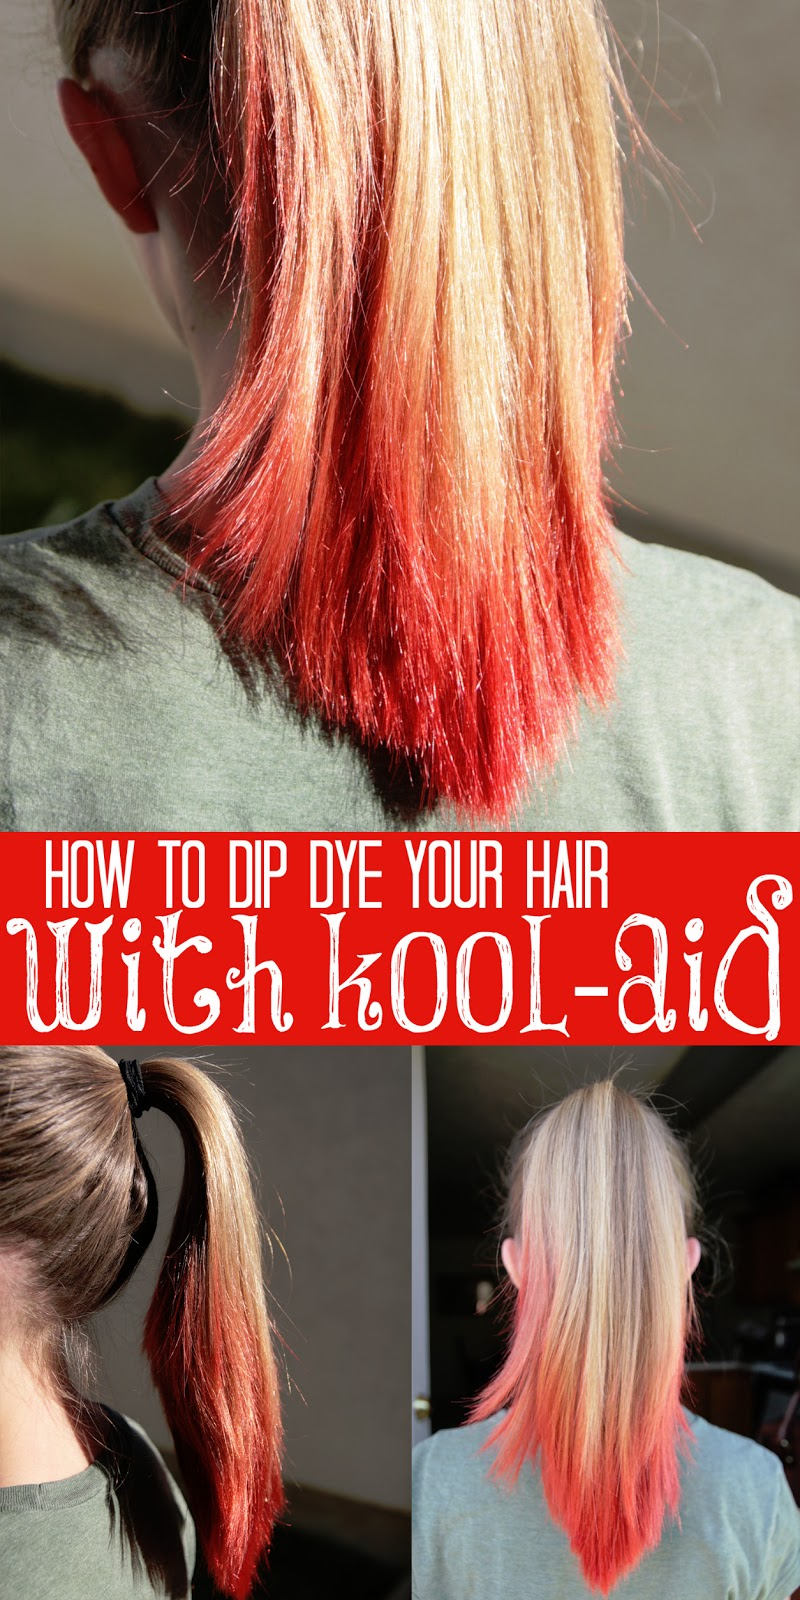 How To Dip Dye Your Hair With Kool Aid Tips From A Typical Mom